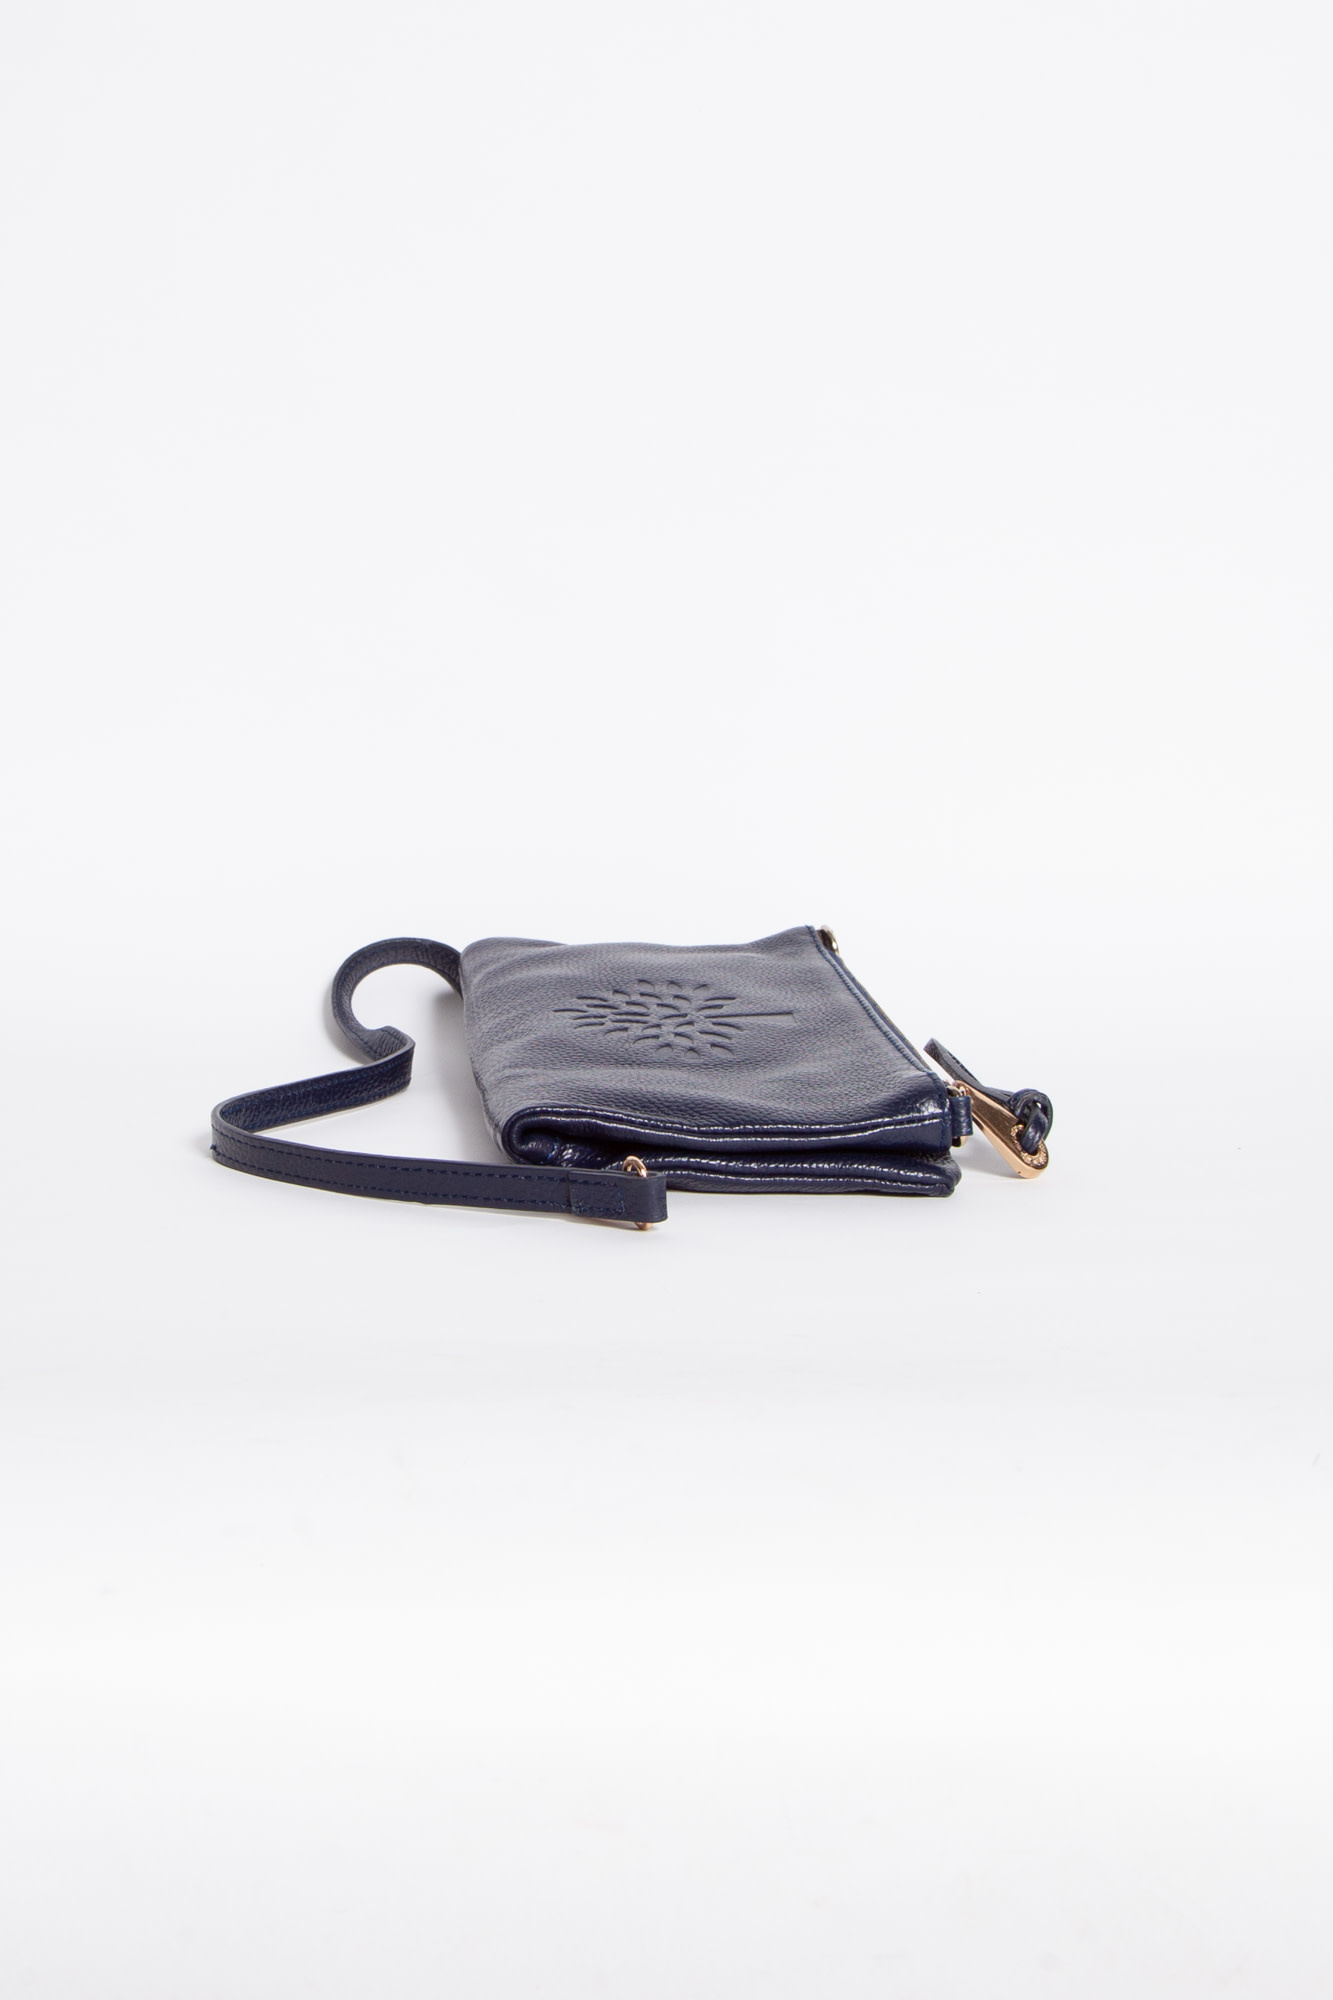 Mulberry NAVY BLUE POUCH WITH BRAID